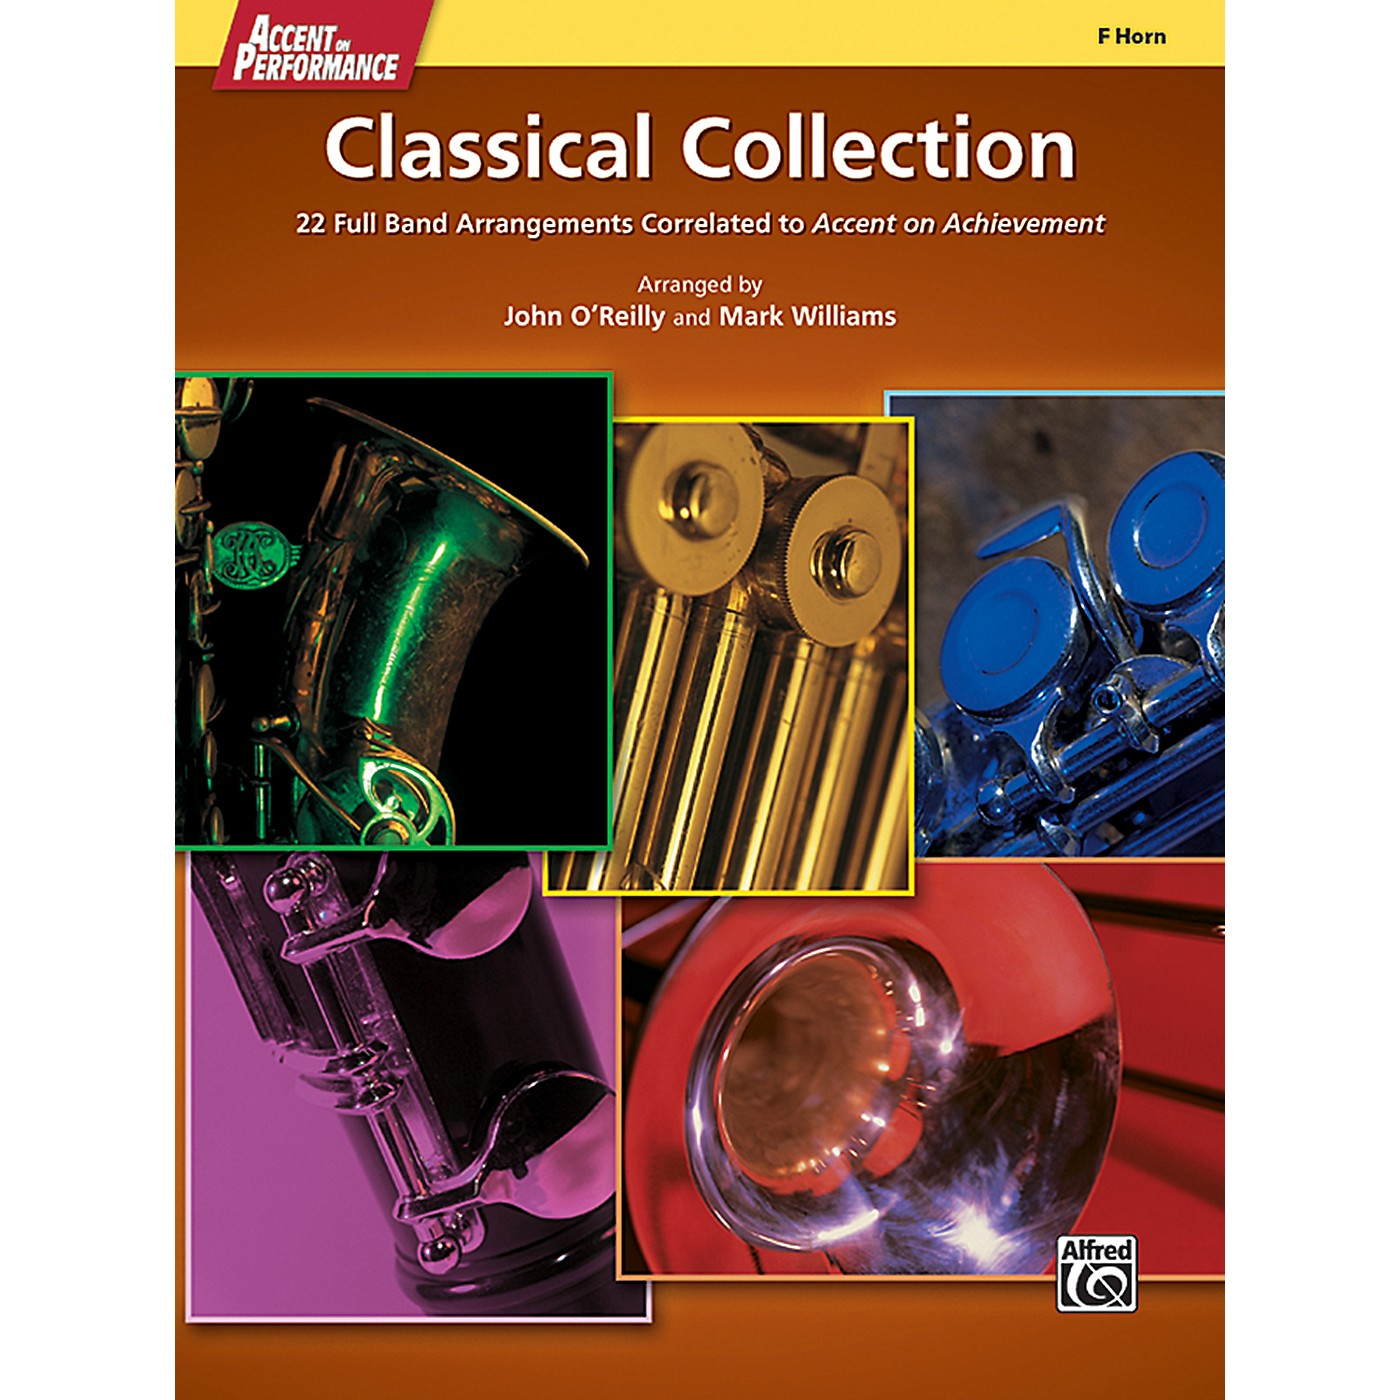 Alfred Accent on Performance Classical Collection F Horn Book thumbnail